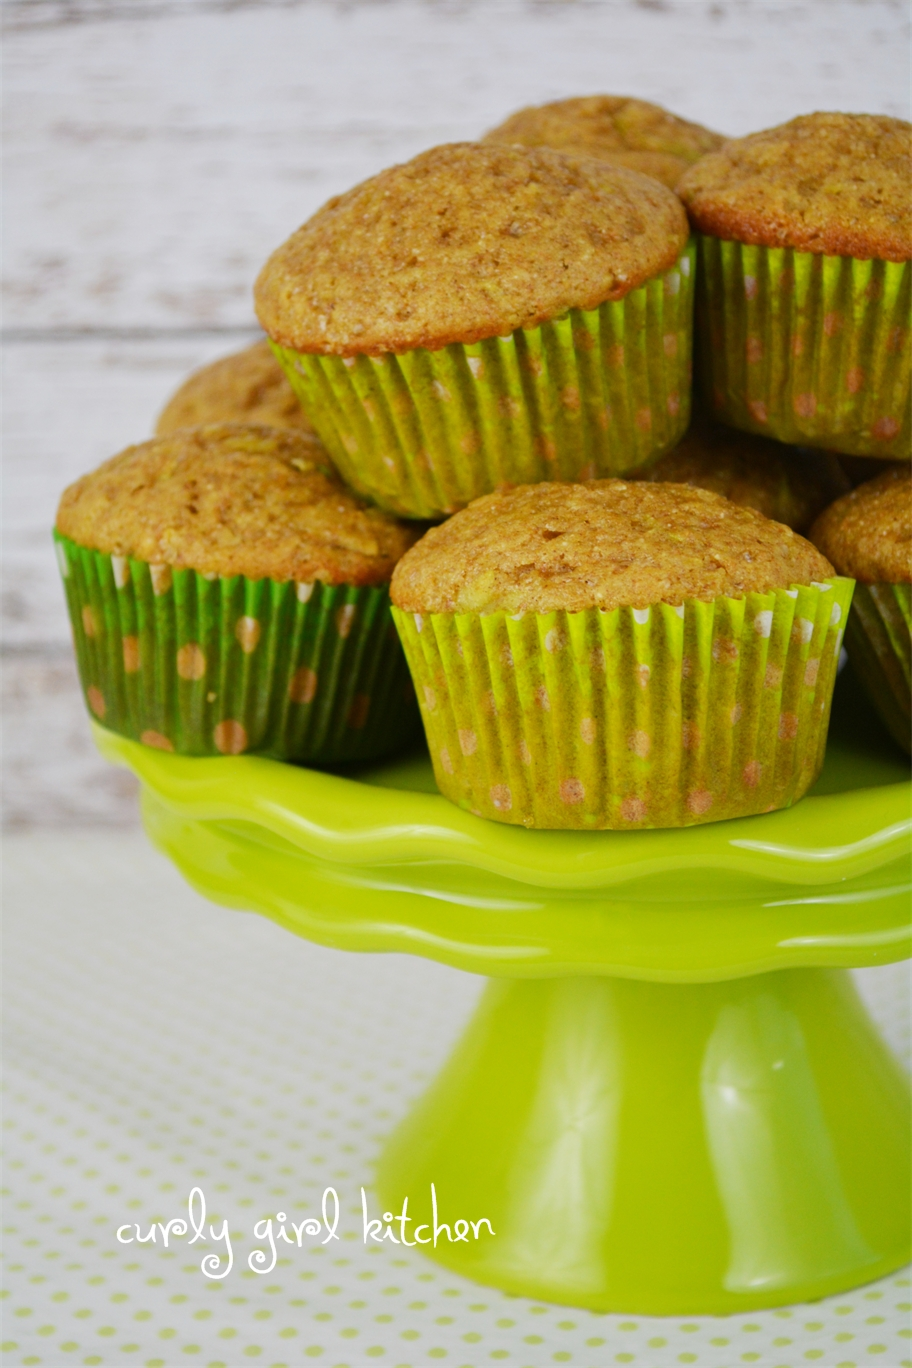 Zucchini Muffins | oursongfortoday